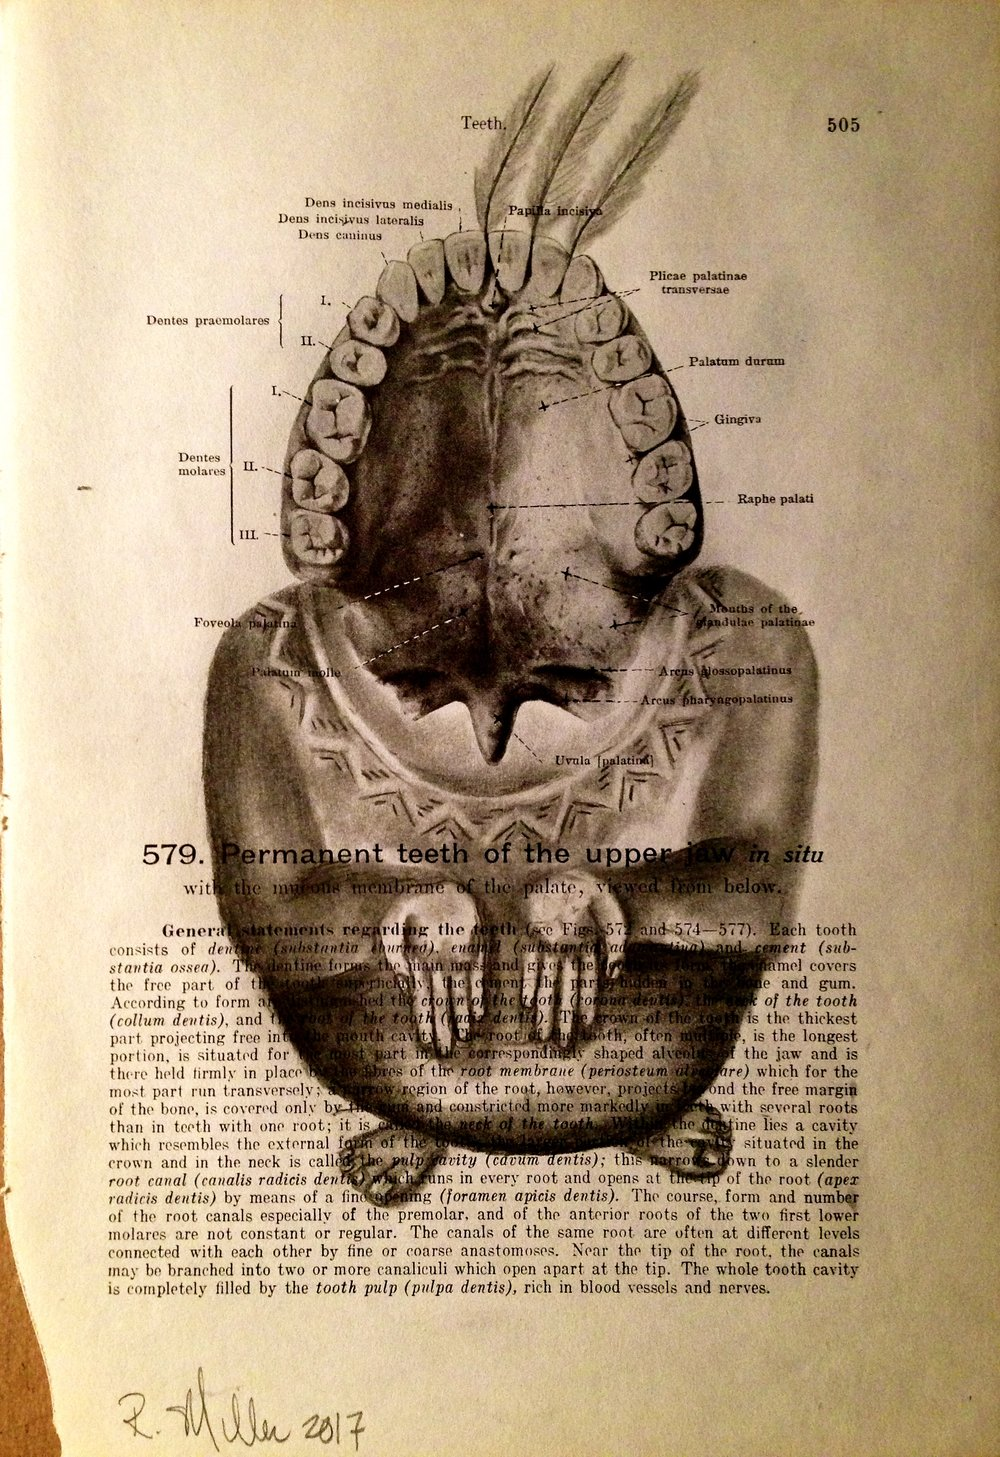 Wisdom Teeth, 2017 Charcoal on antique medical paper